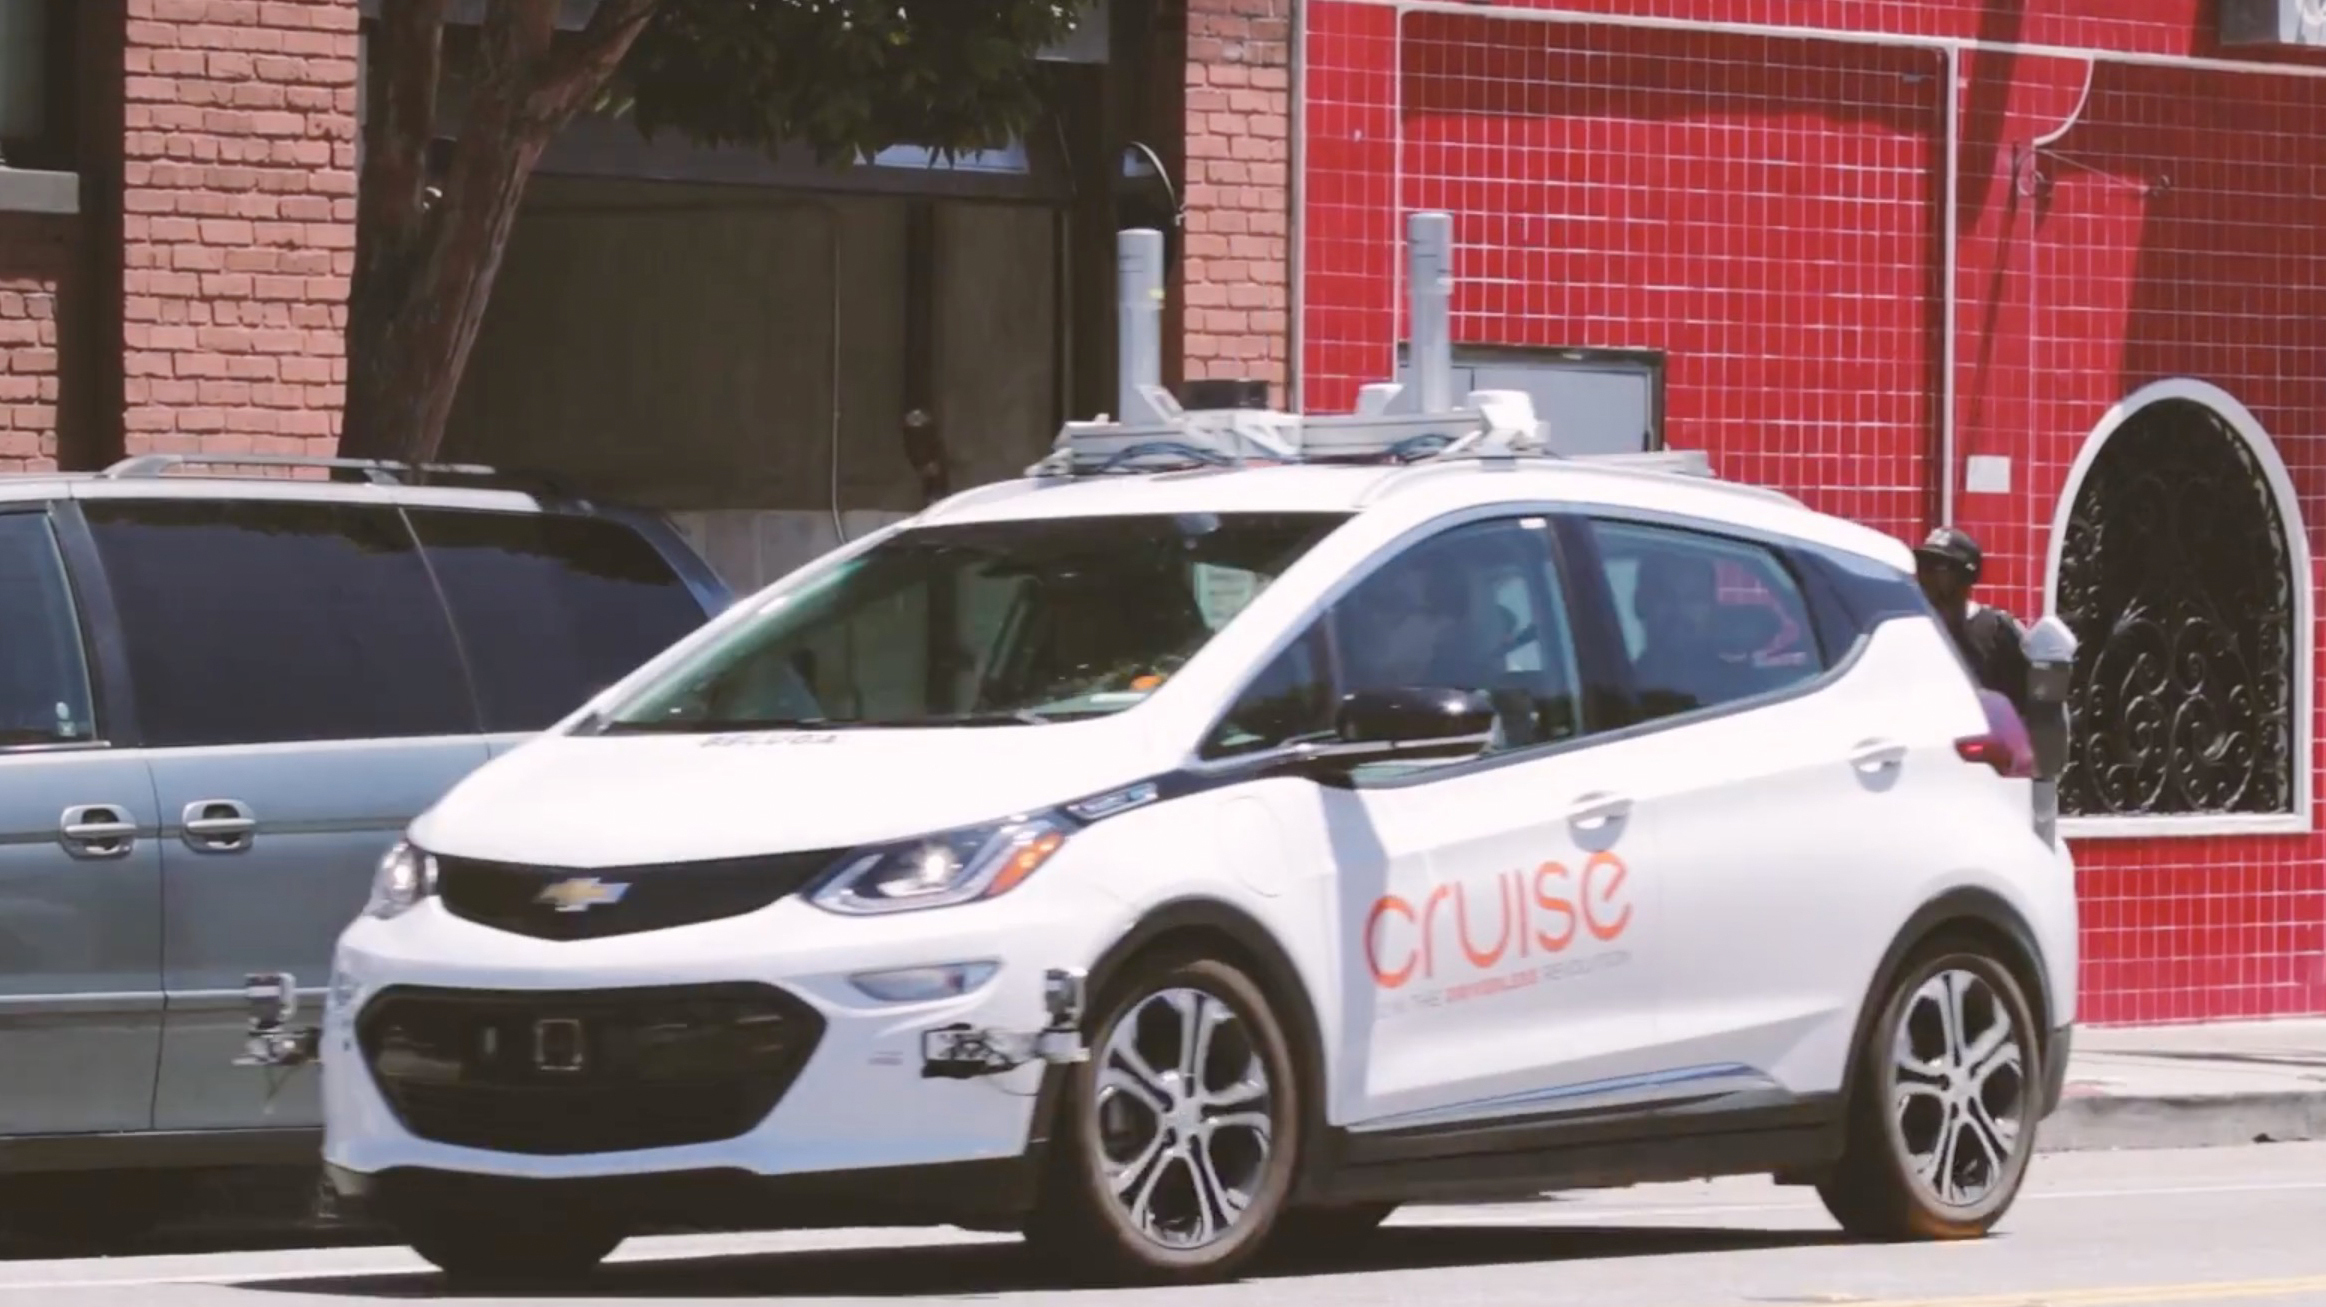 Gm Tochter Cruise Automation Testet Autonome E Taxis Heise Online